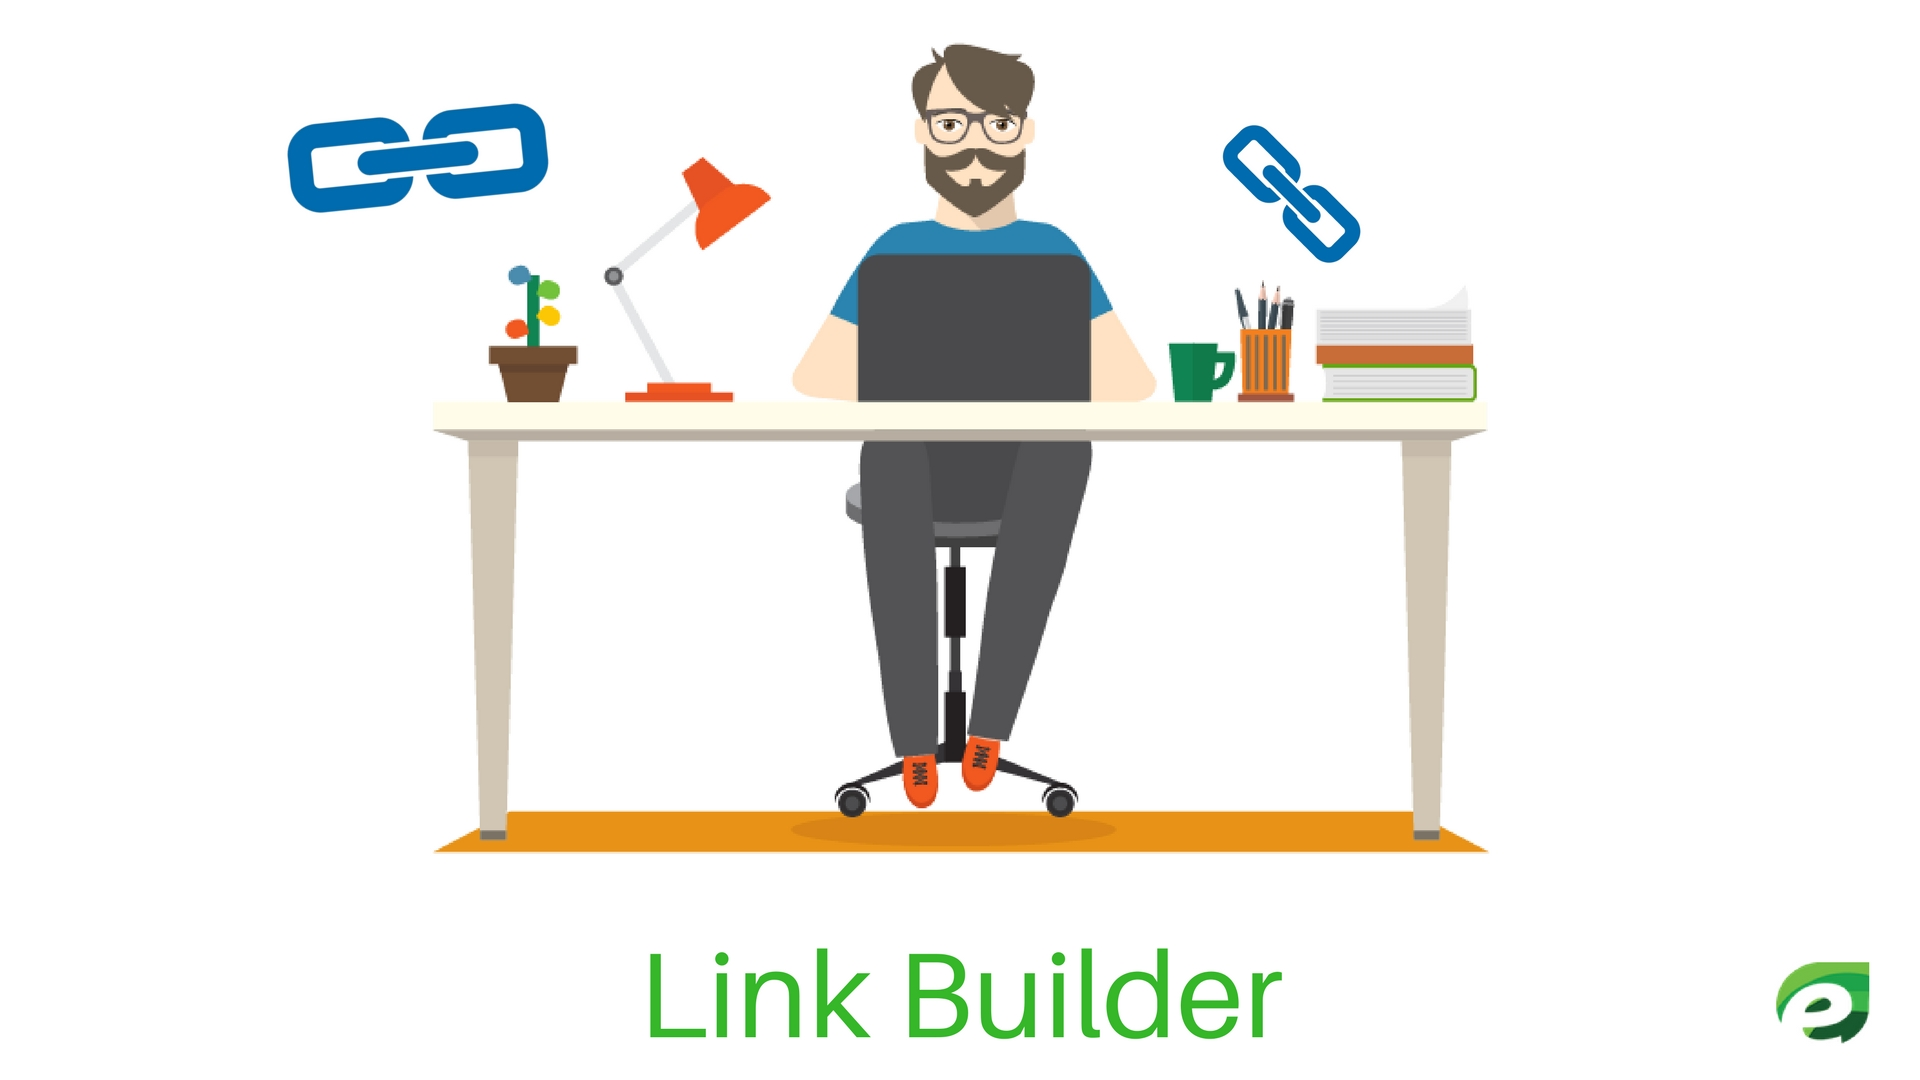 Link Builder - SEO Team